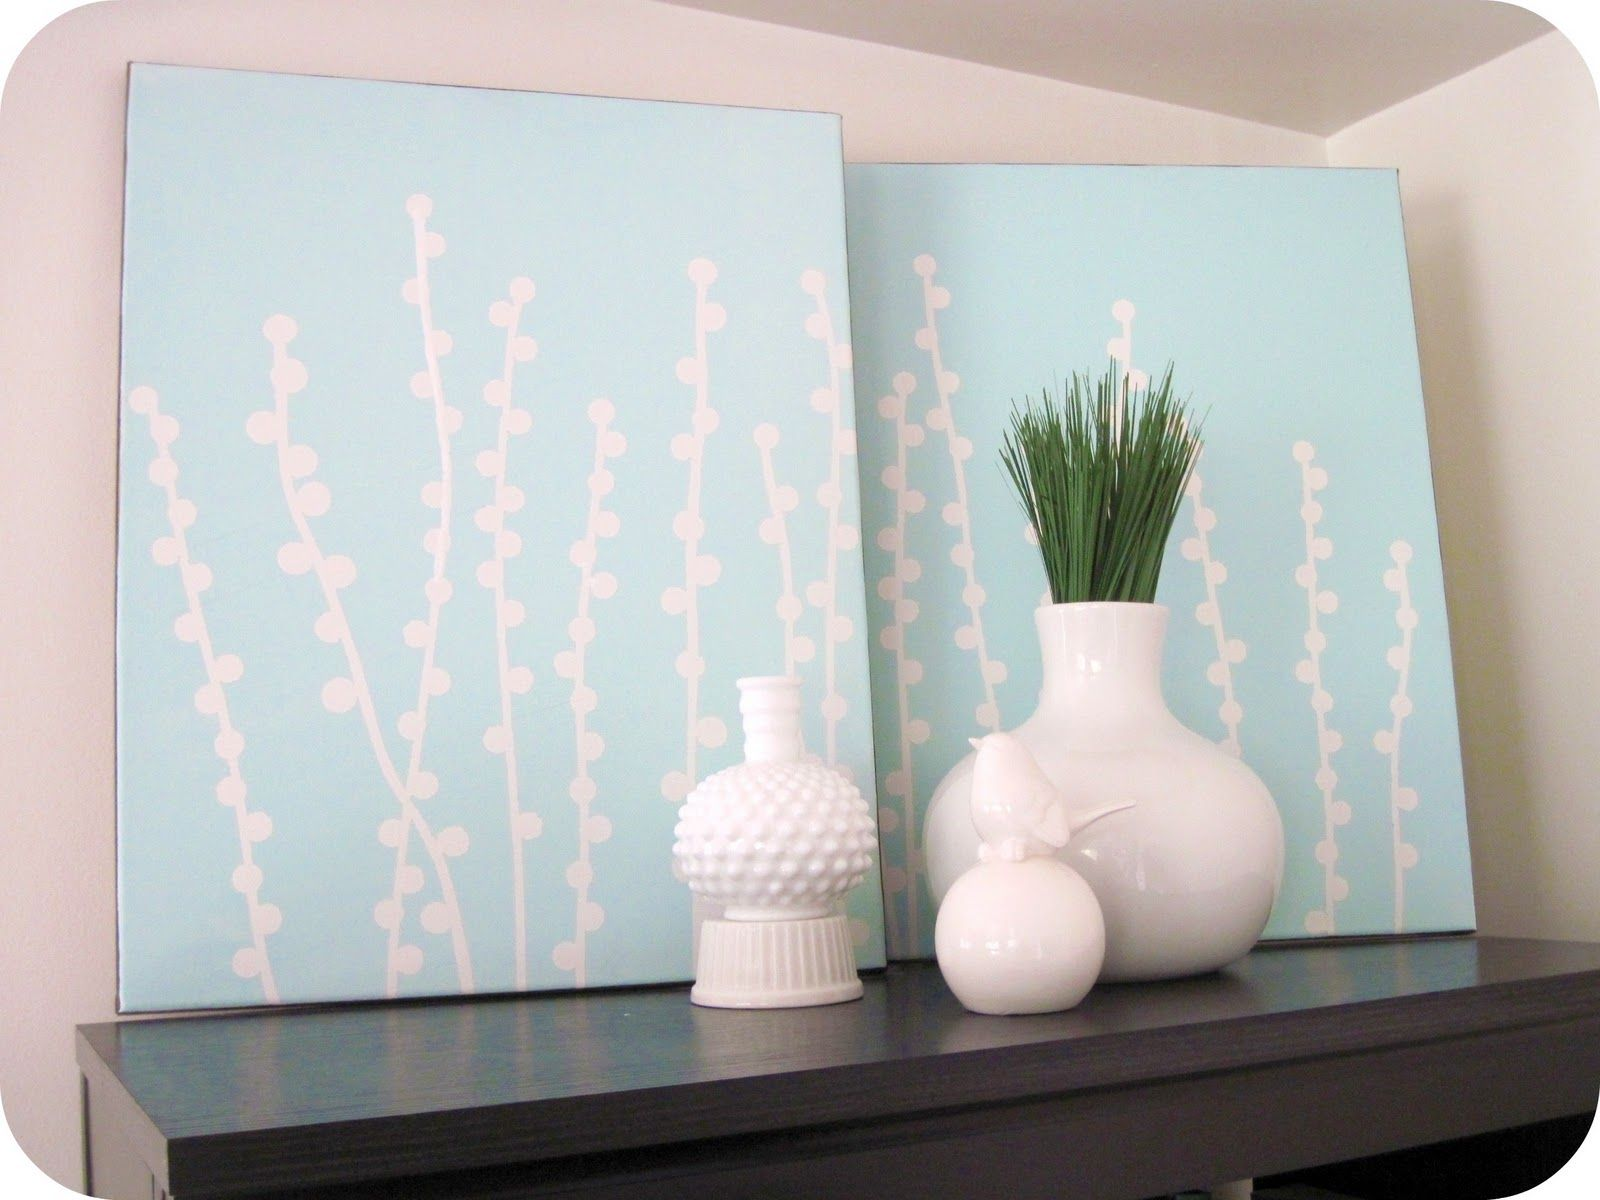 DIY Vinyl Wall Art  Ways Ideas To Reuse Your Unwanted Canvases - How to make homemade vinyl decals